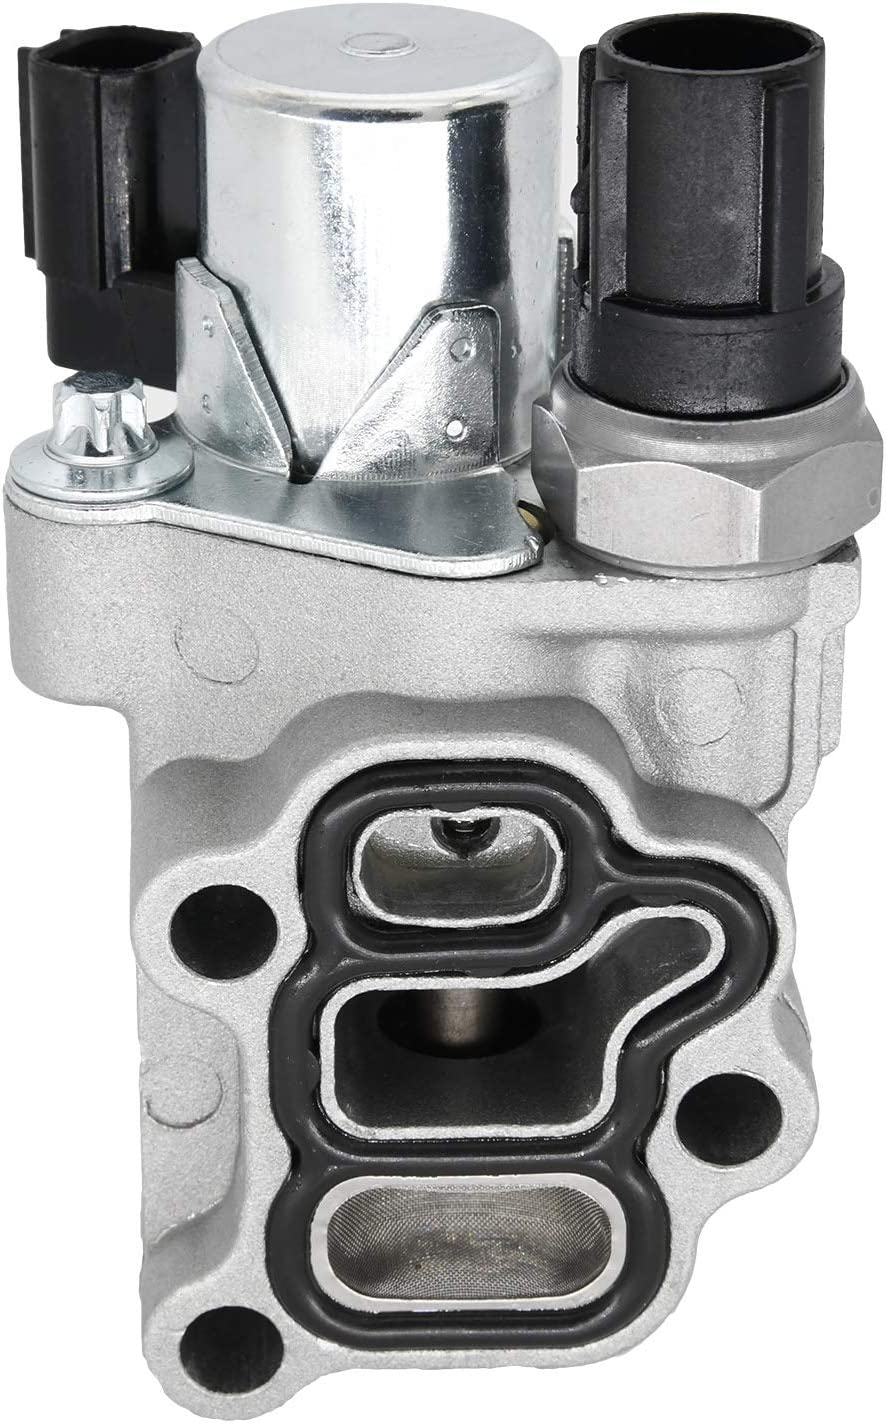 KAKO 15810-RAA-A03 All stores are sold VTEC Solenoid Spool We OFFer at cheap prices Timing Oil with Pre Valve